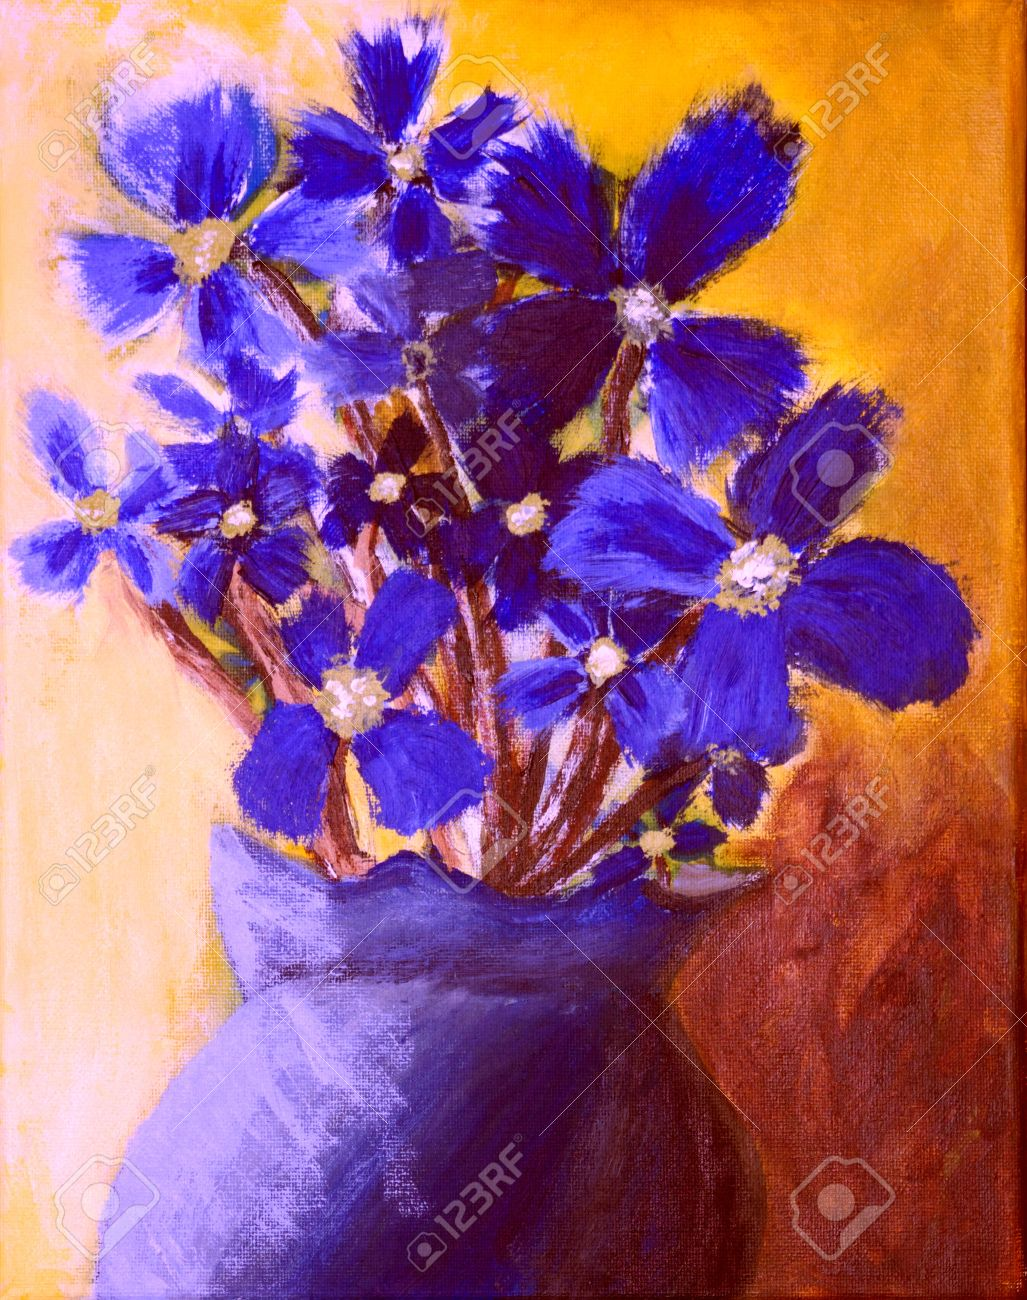 Blue Flowers In A Vase Stock Photo